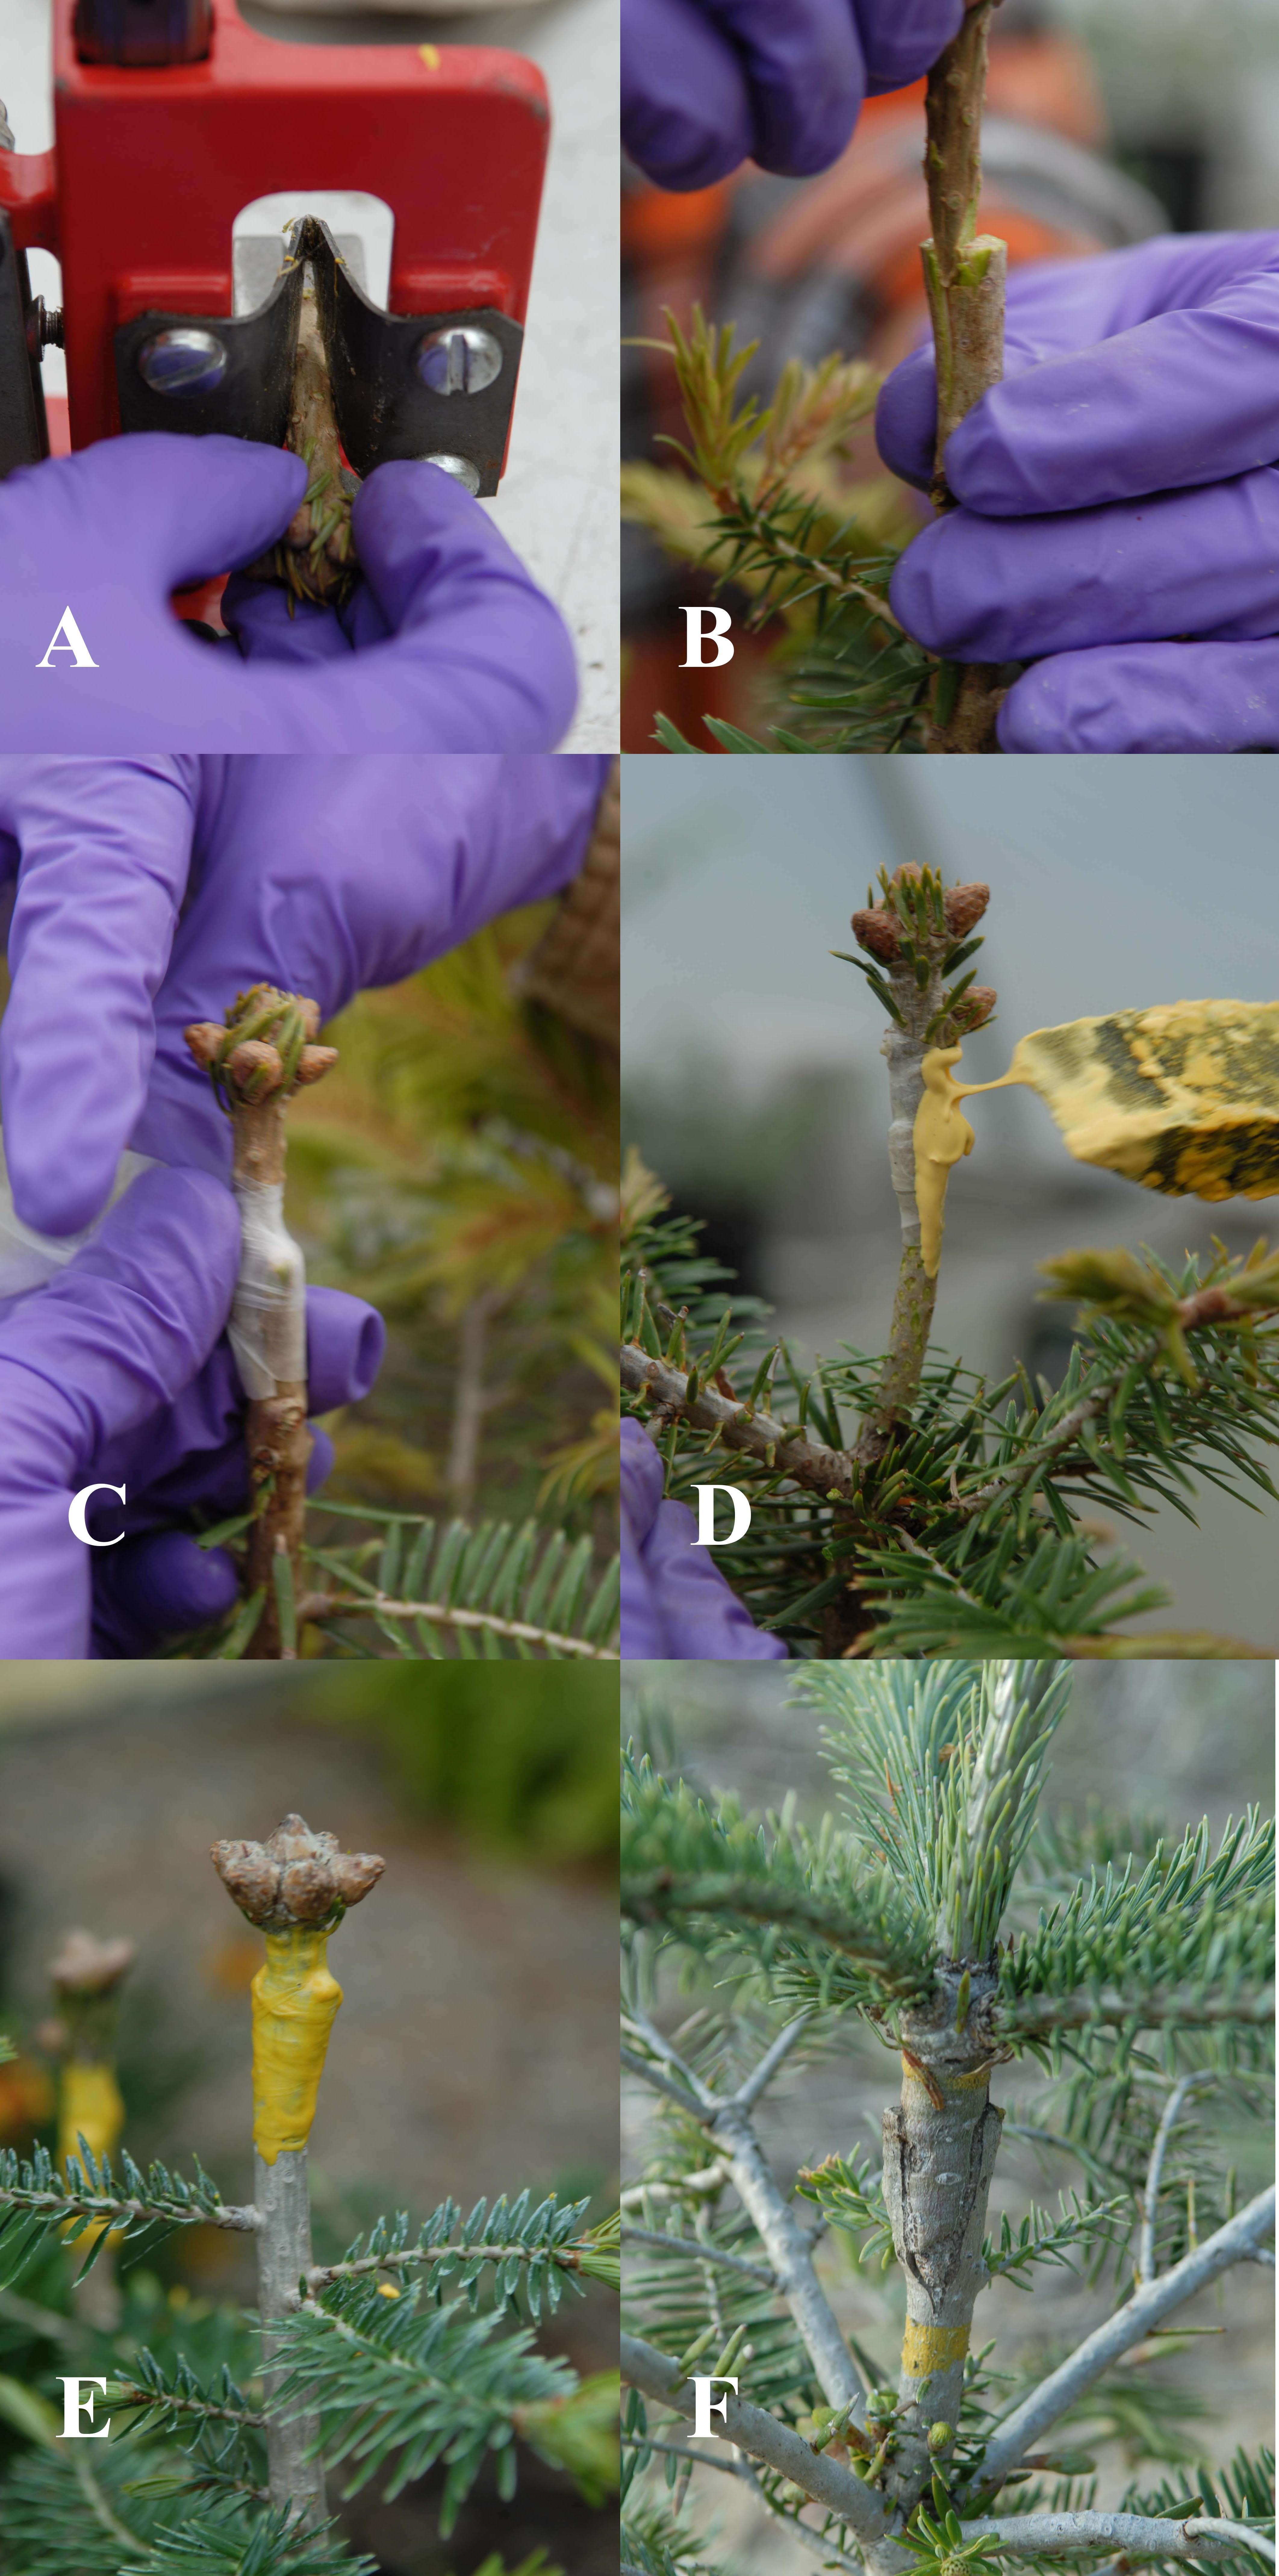 Because of the more desirable Christmas tree characteristics of Fraser fir, many growers have been grafting Fraser fir scion (shoot) wood to Momi fir rootstock.